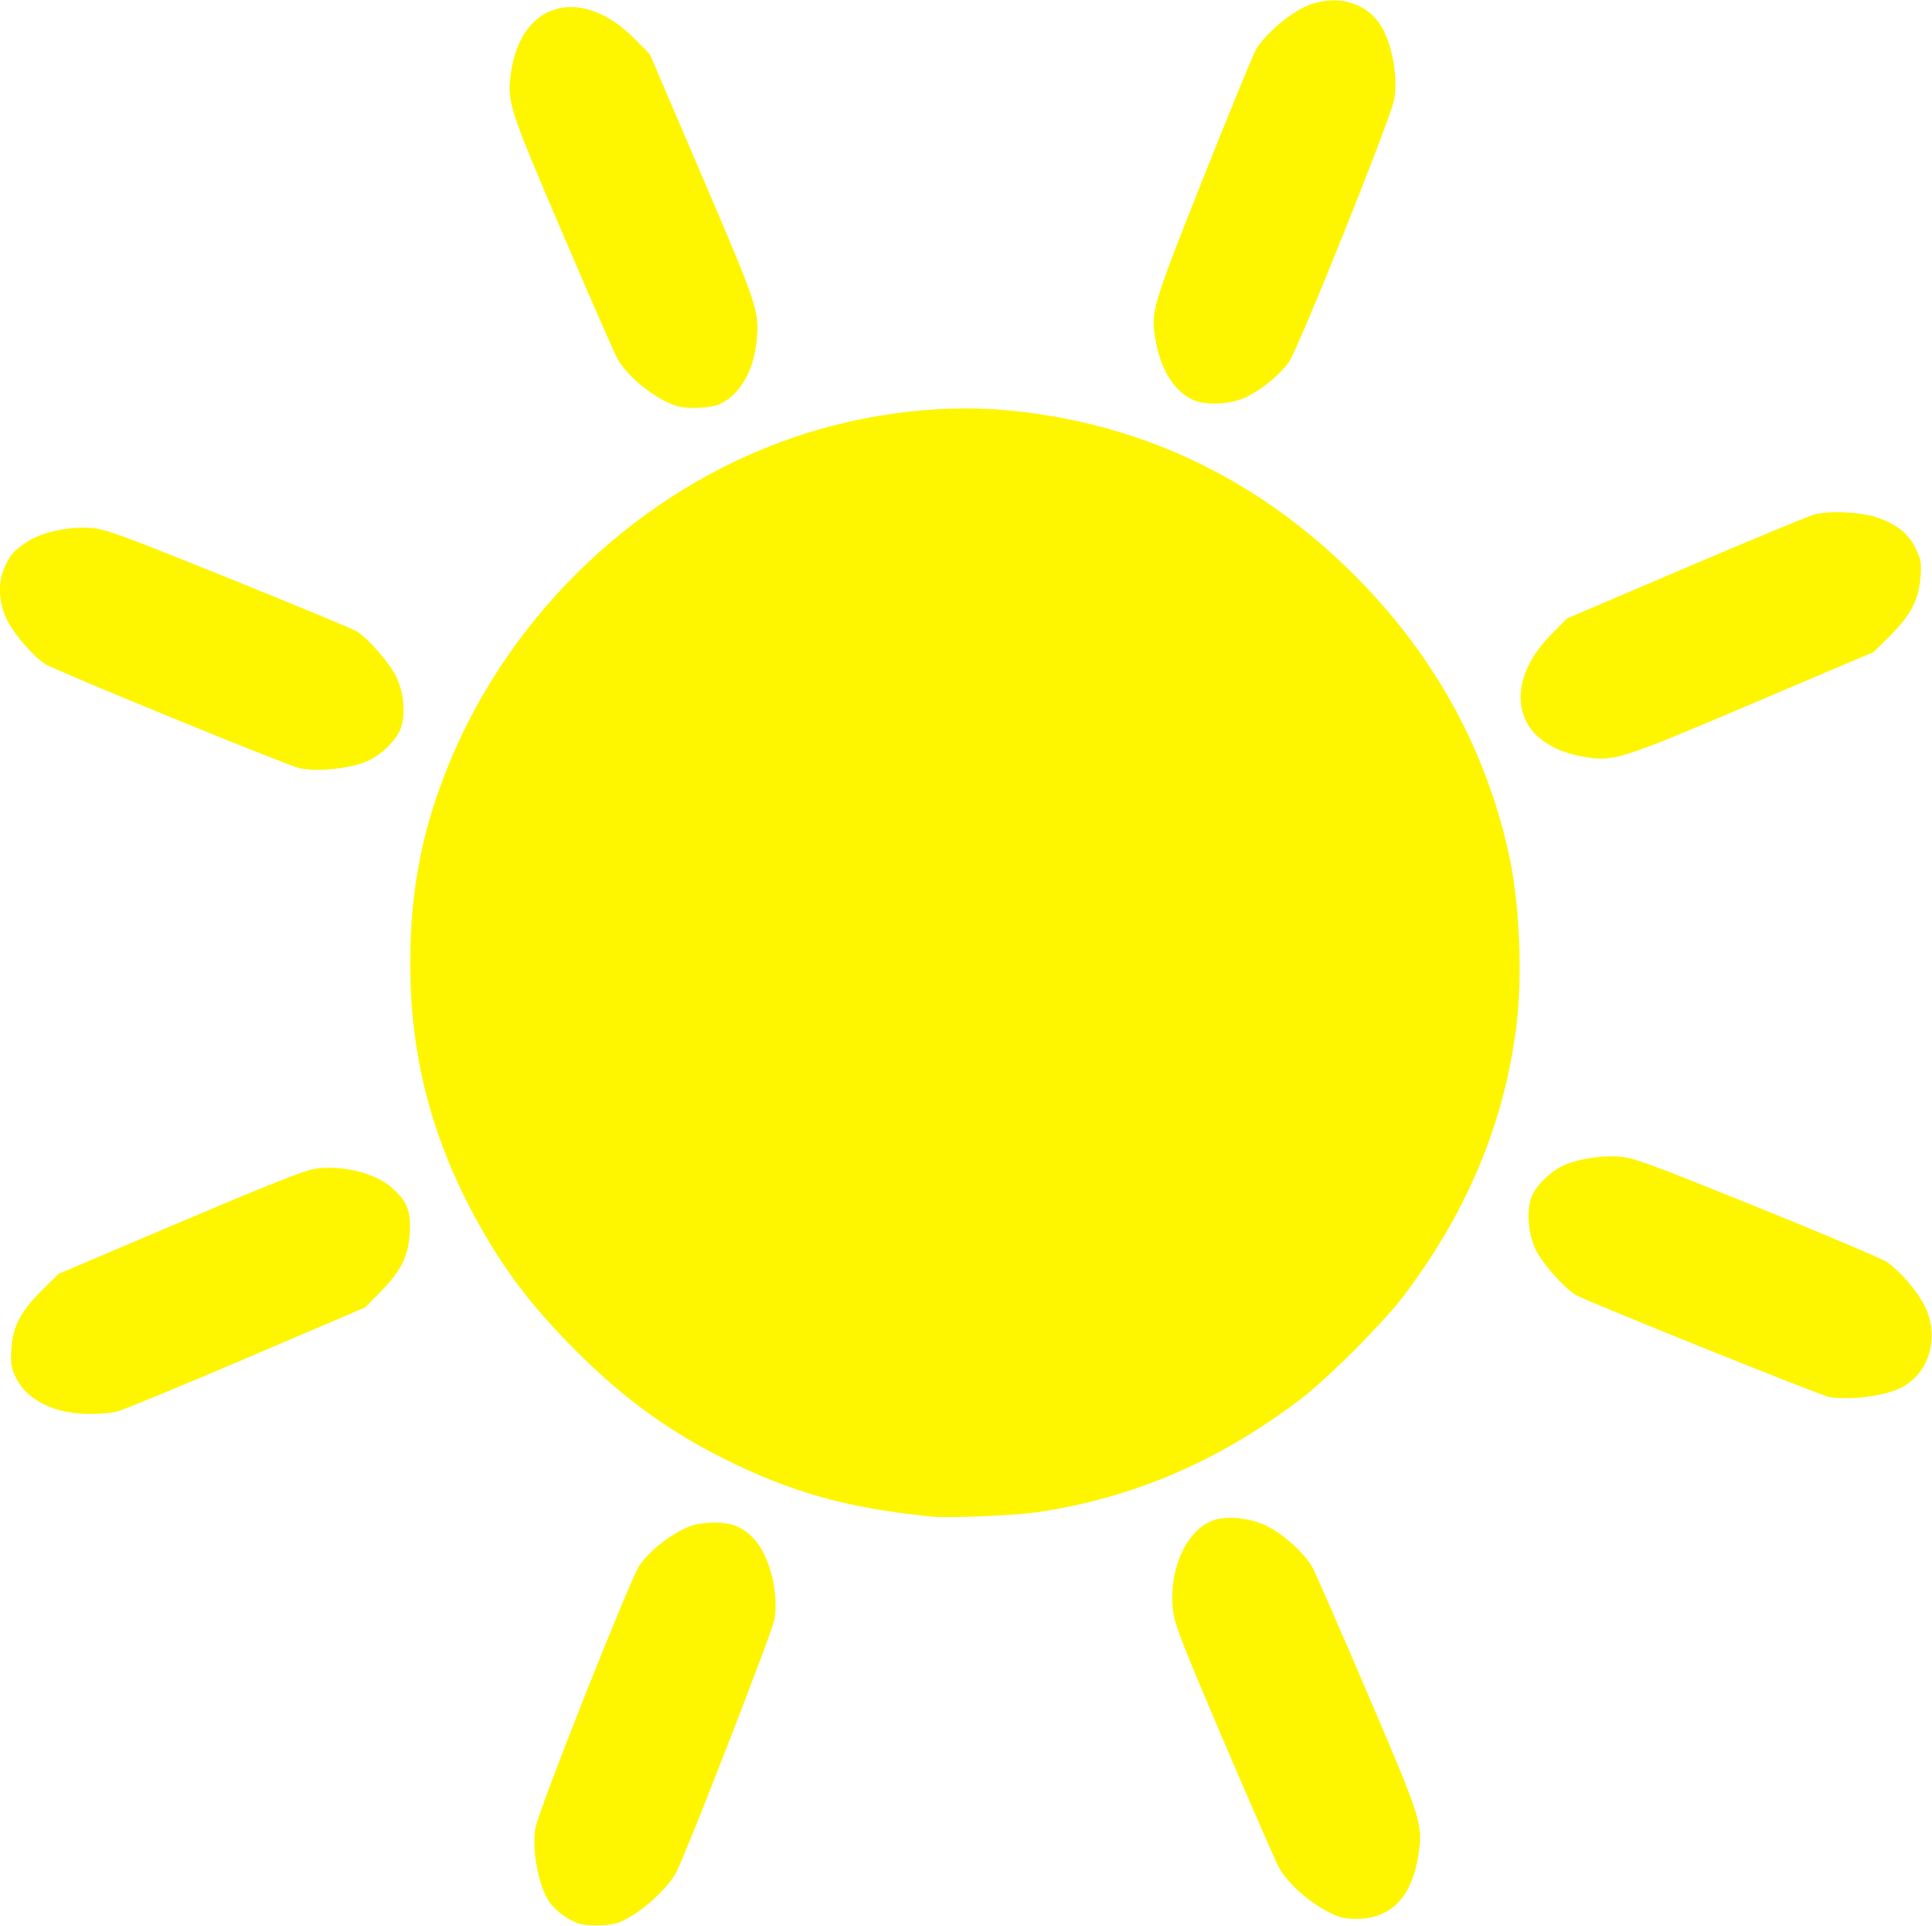 Sun clipart #8, Download drawings